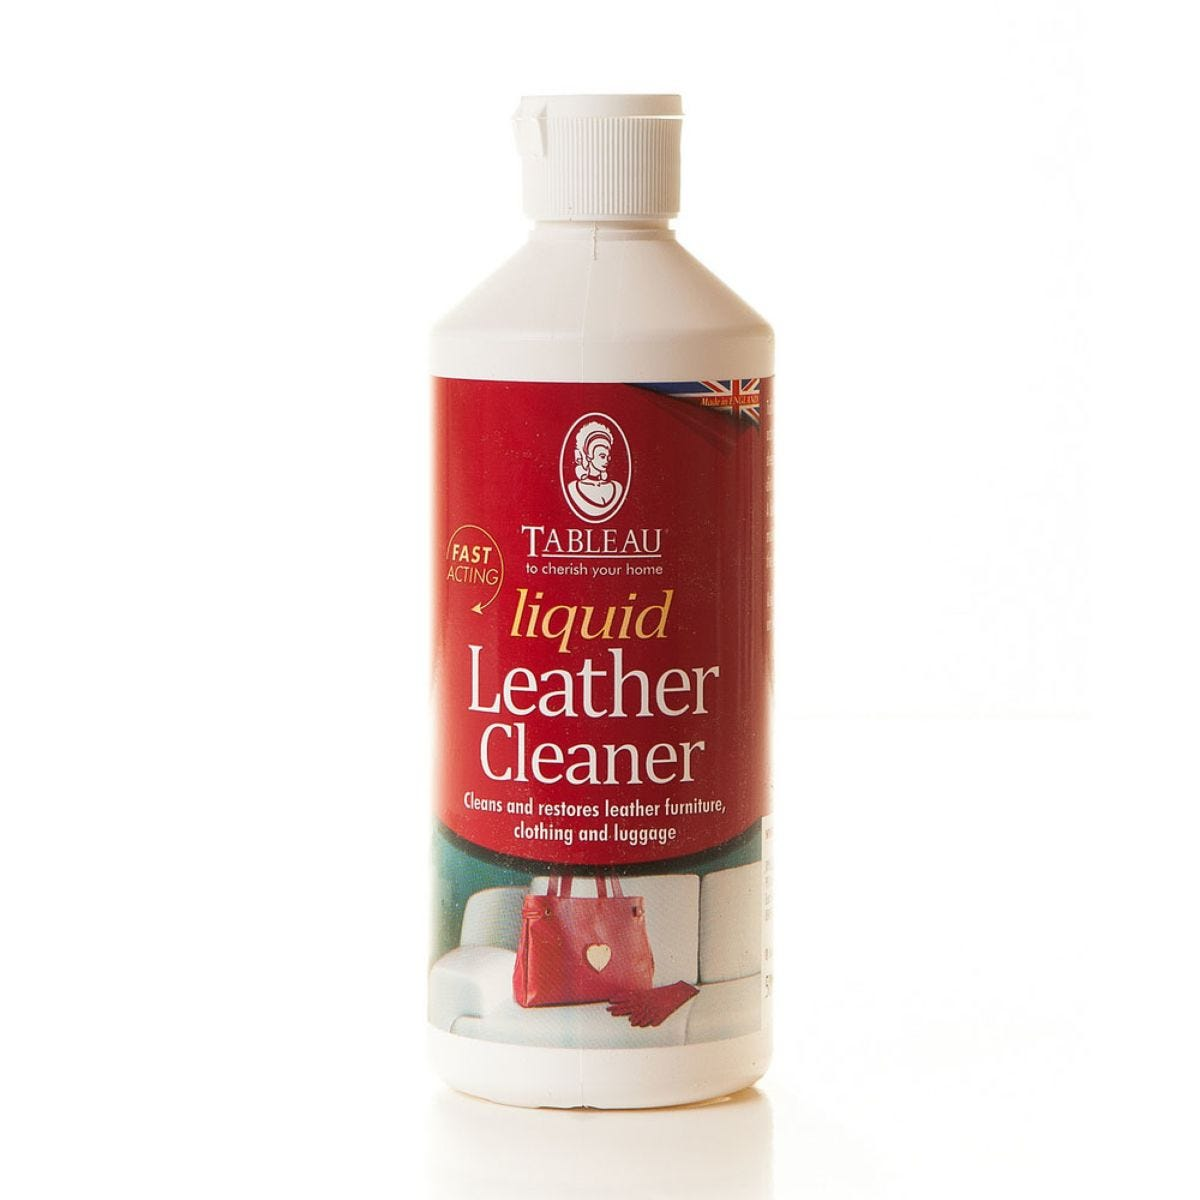 Tableau Leather Cleaner